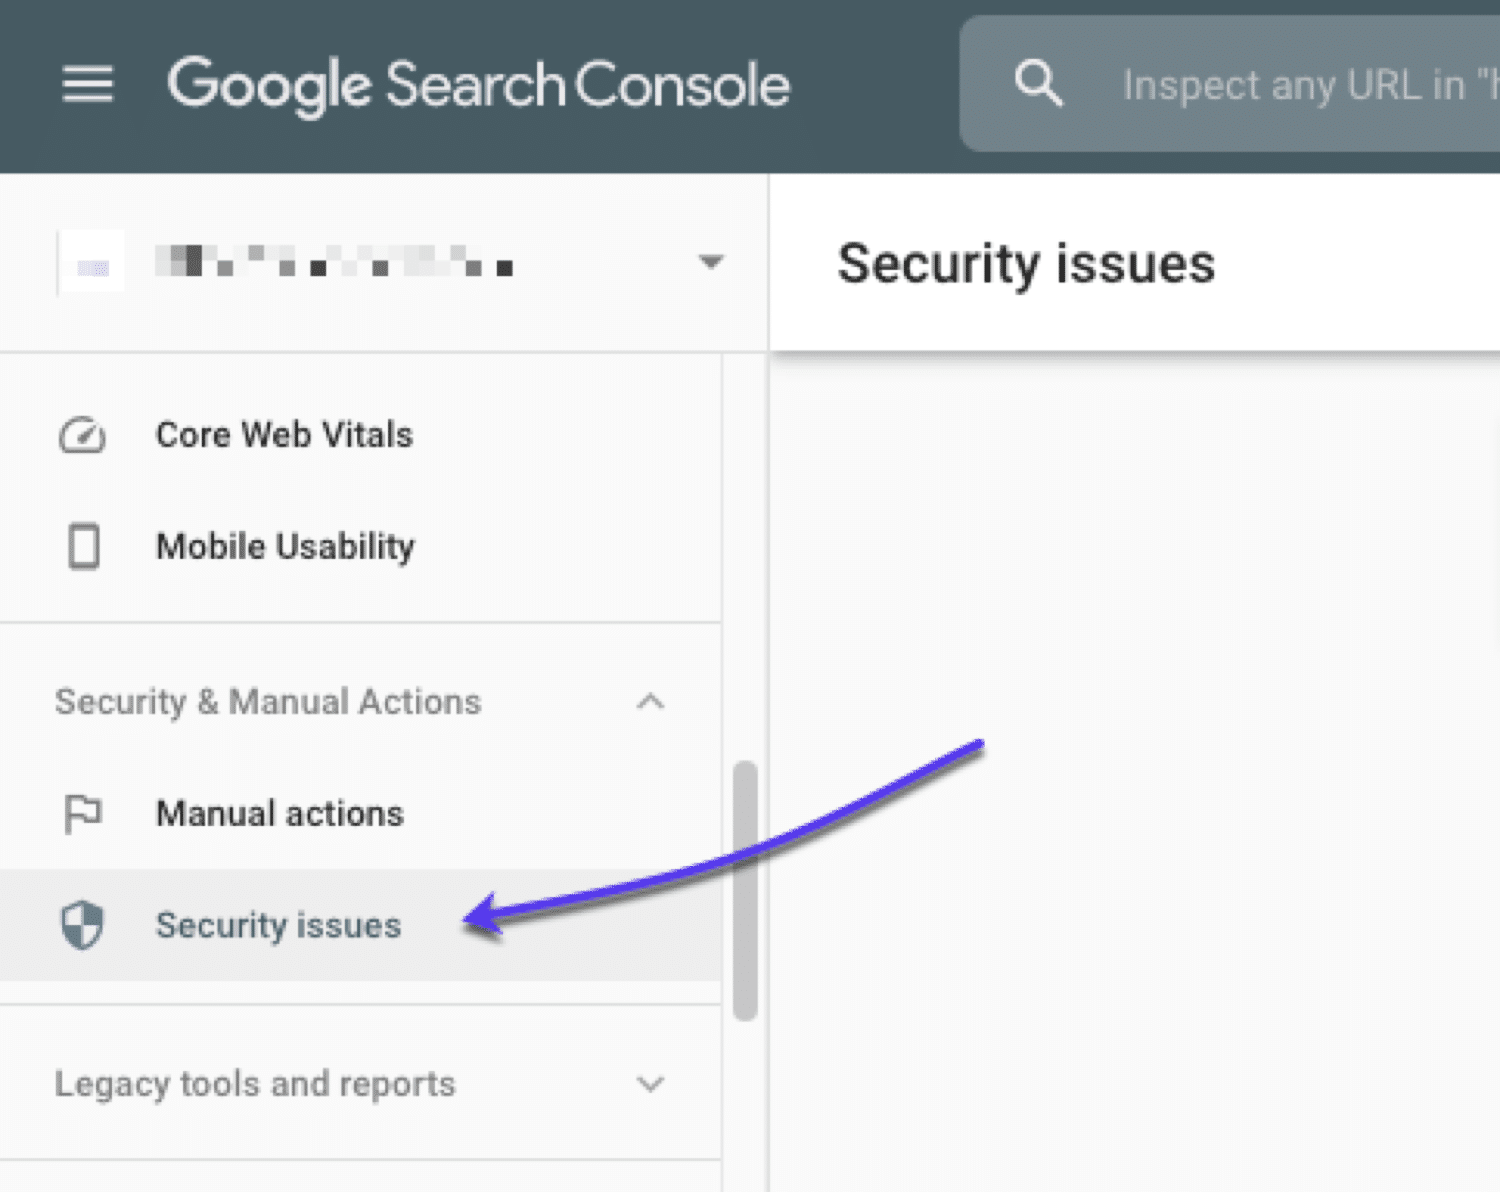 How to view any security issues in Google Search Console